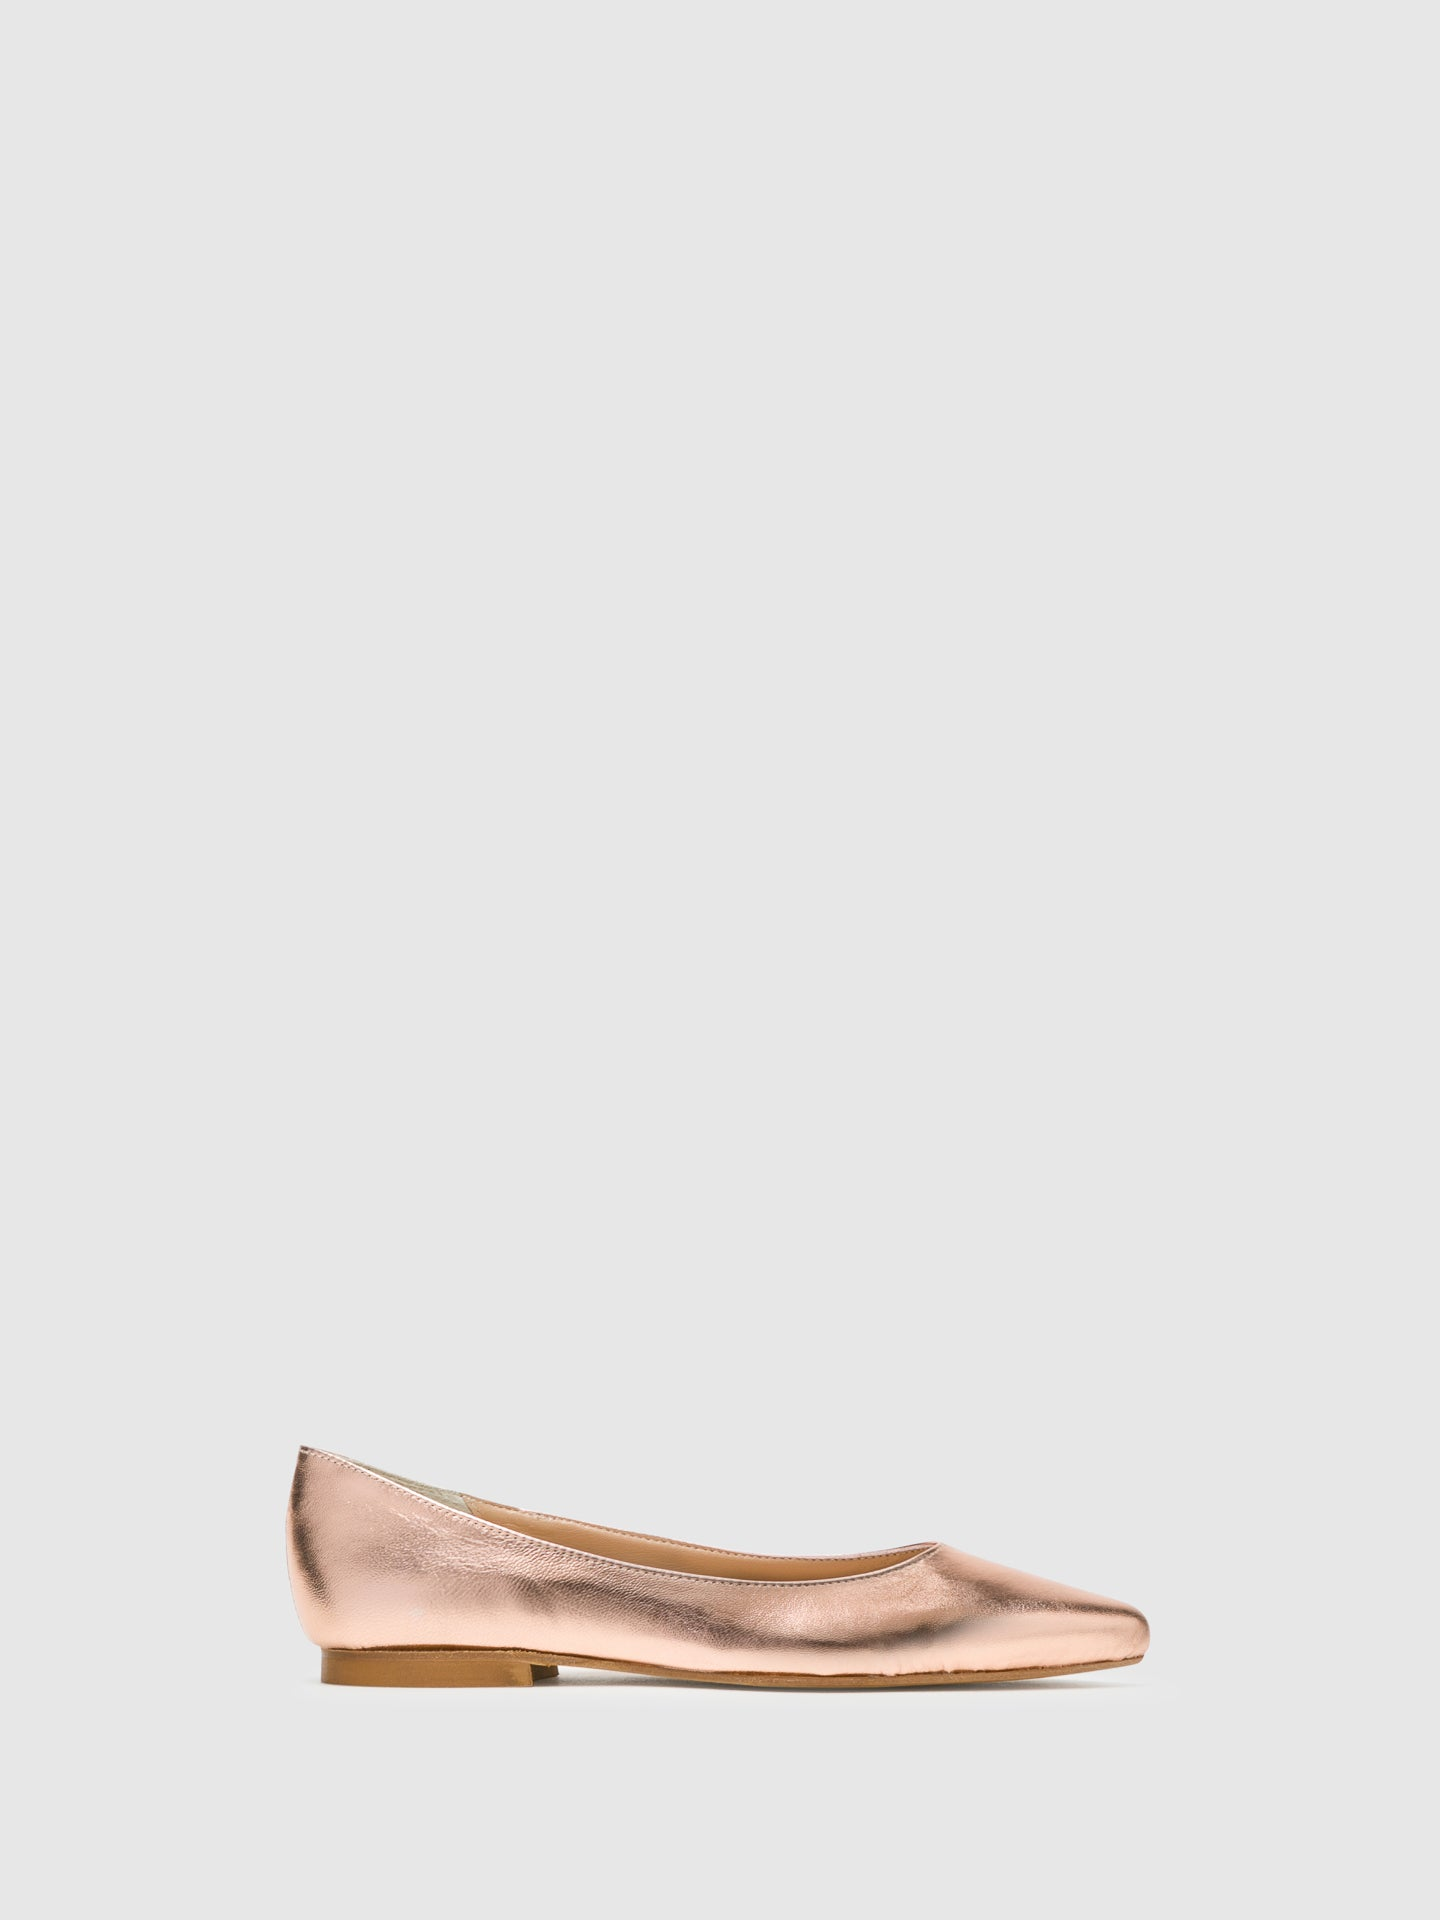 Bos&Co DarkSalmon Pointed Toe Ballerinas